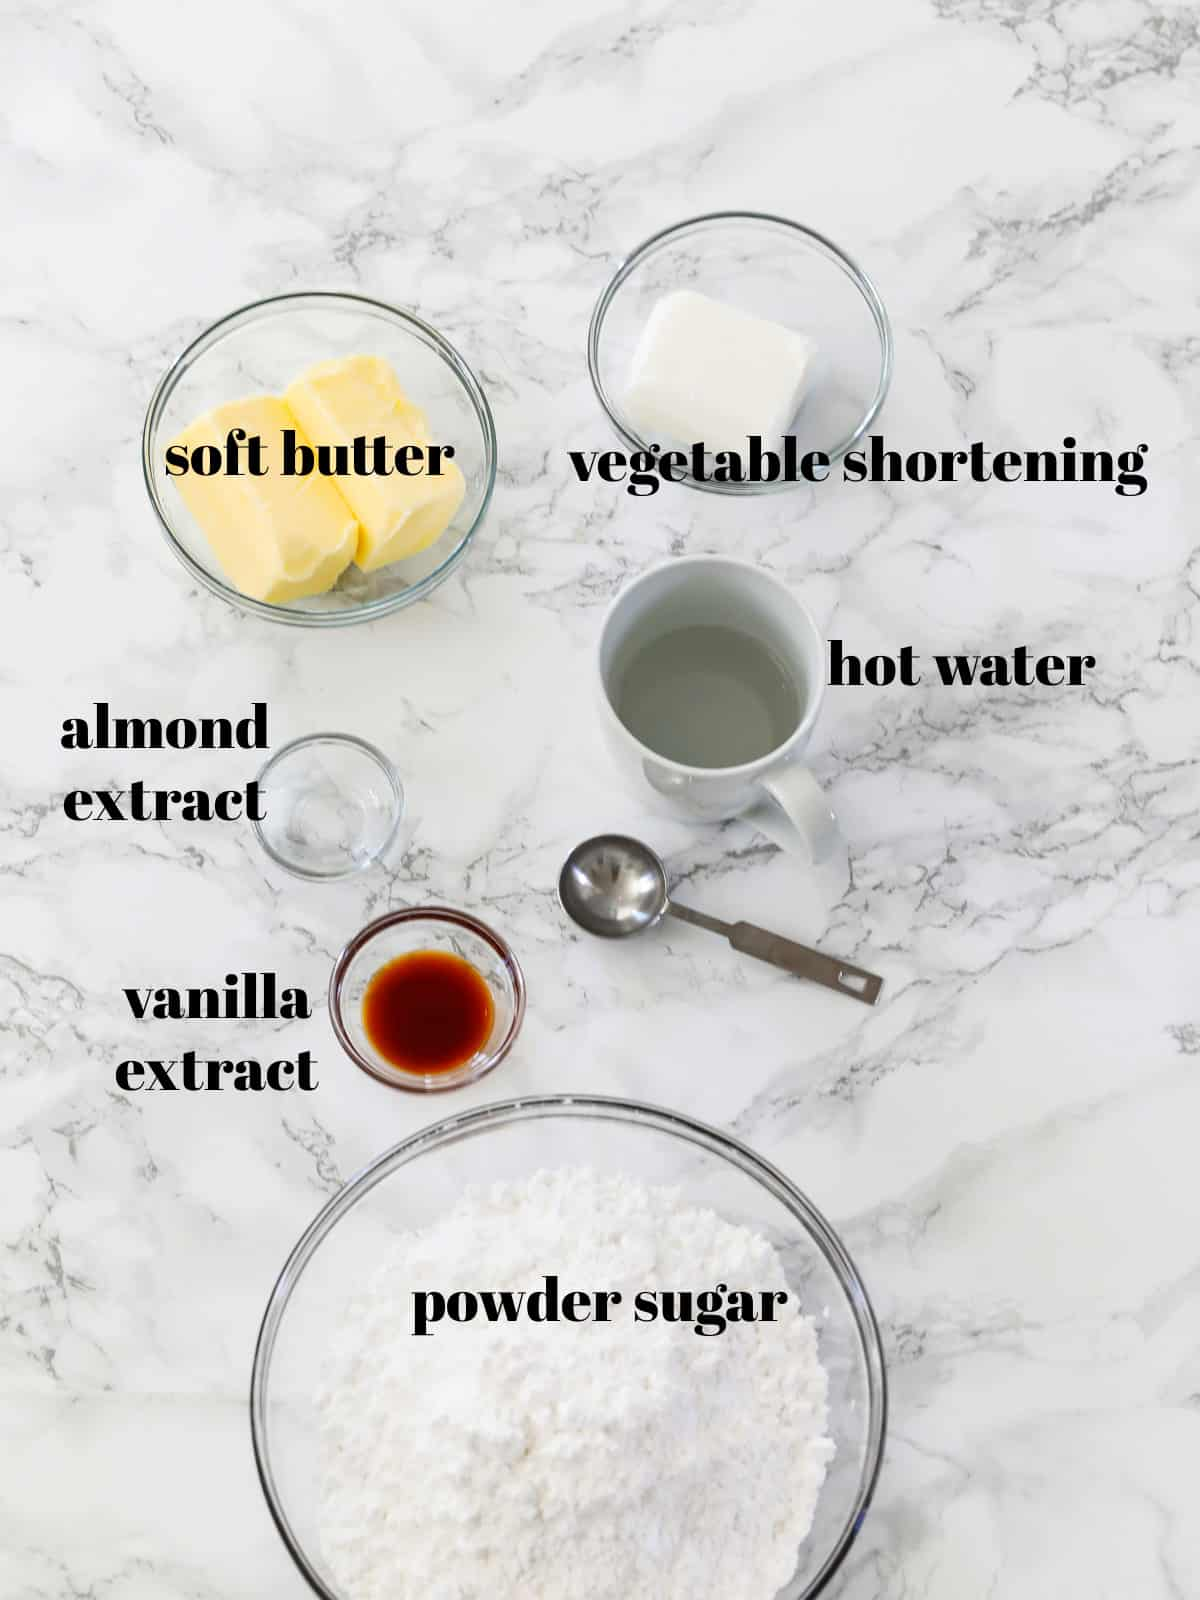 The ingredients to make cake frosting on a countertop labeled including powder sugar, butter, and shortening.